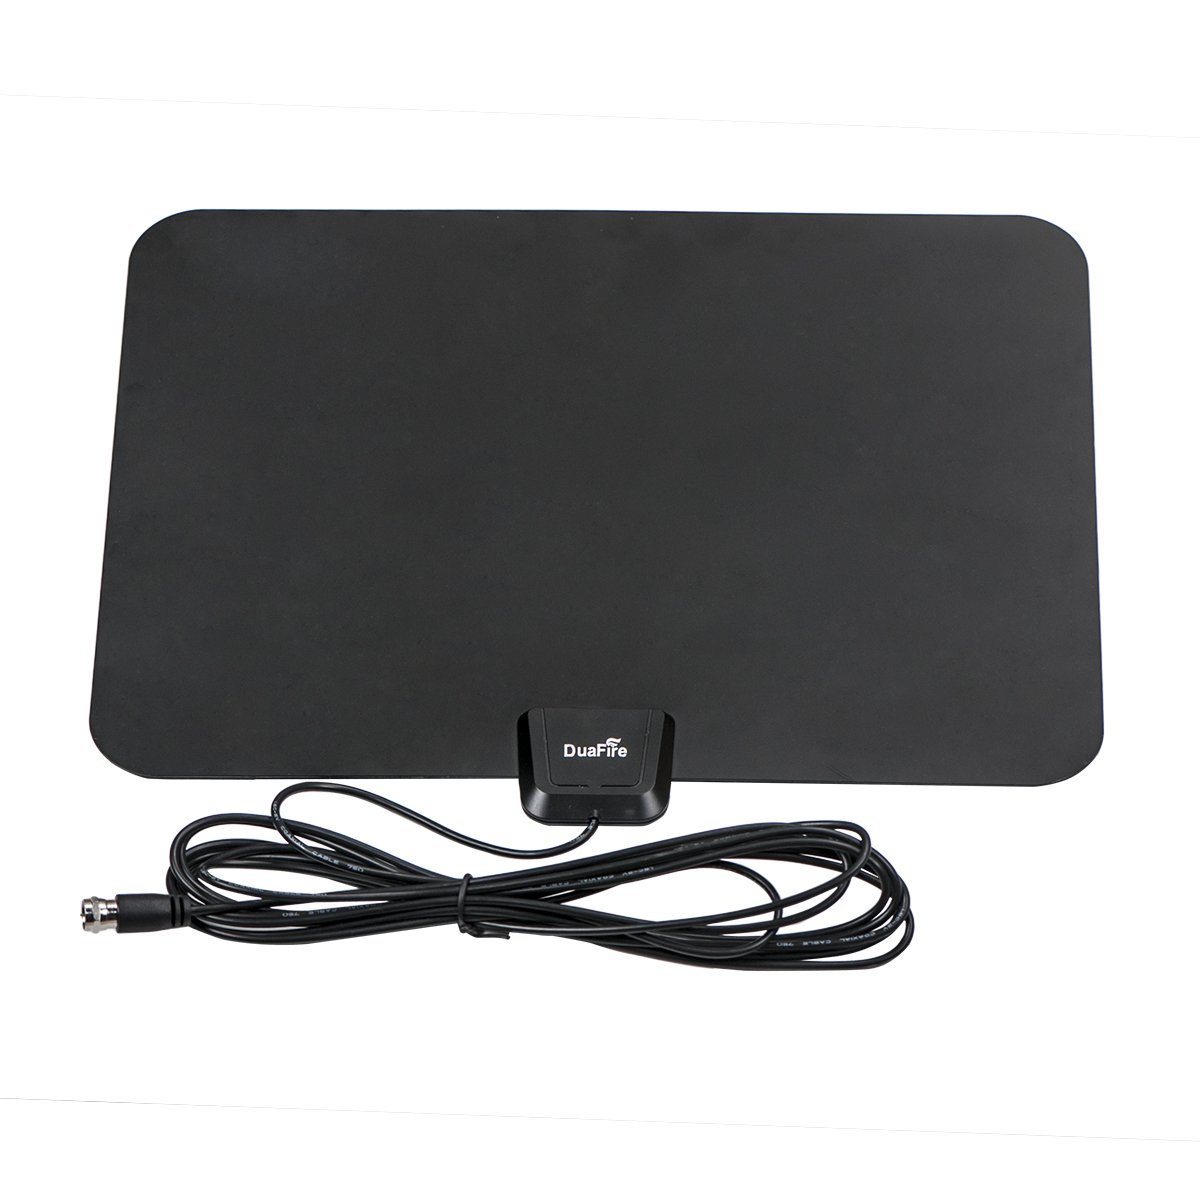 DuaFire HDTV Antenna, Super Thin Digital Indoor HDTV Antenna - 25 Miles Range with 10ft High Performance Coax Cable